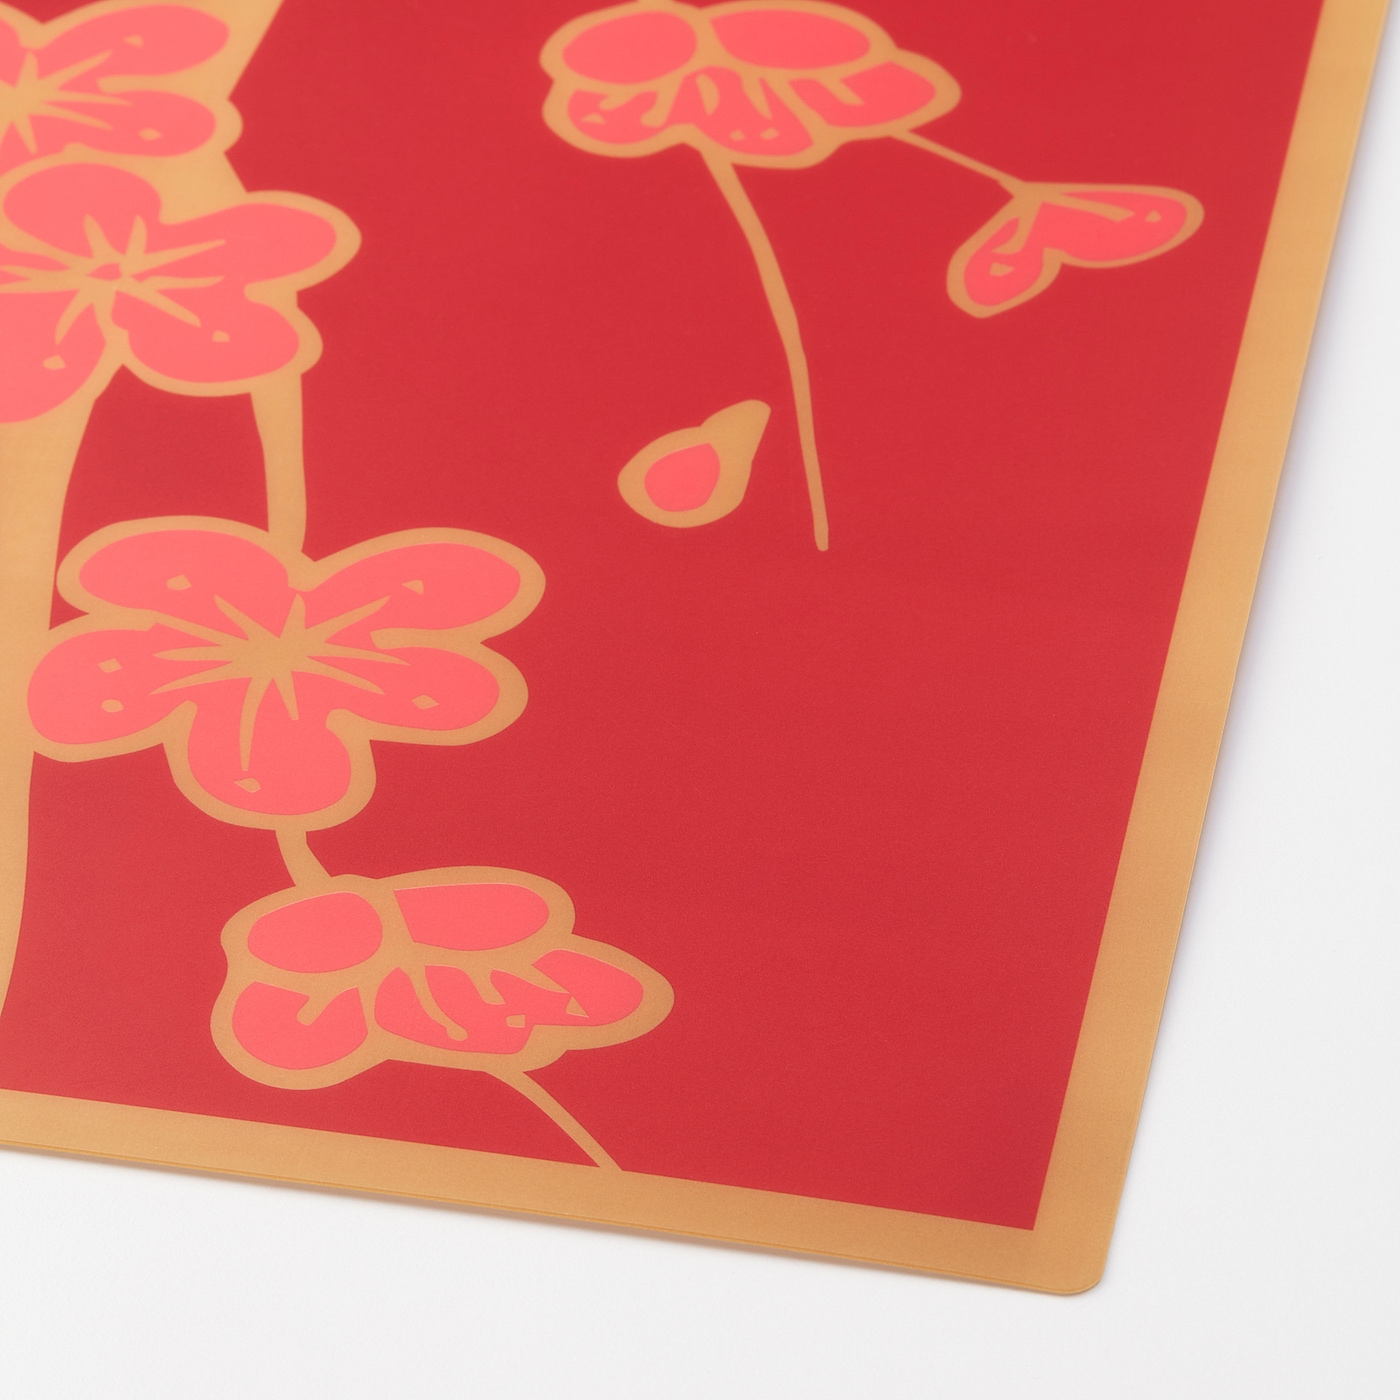 SOLGLIMTAR Place mat, red/gold-colour flower, 45x35 cm